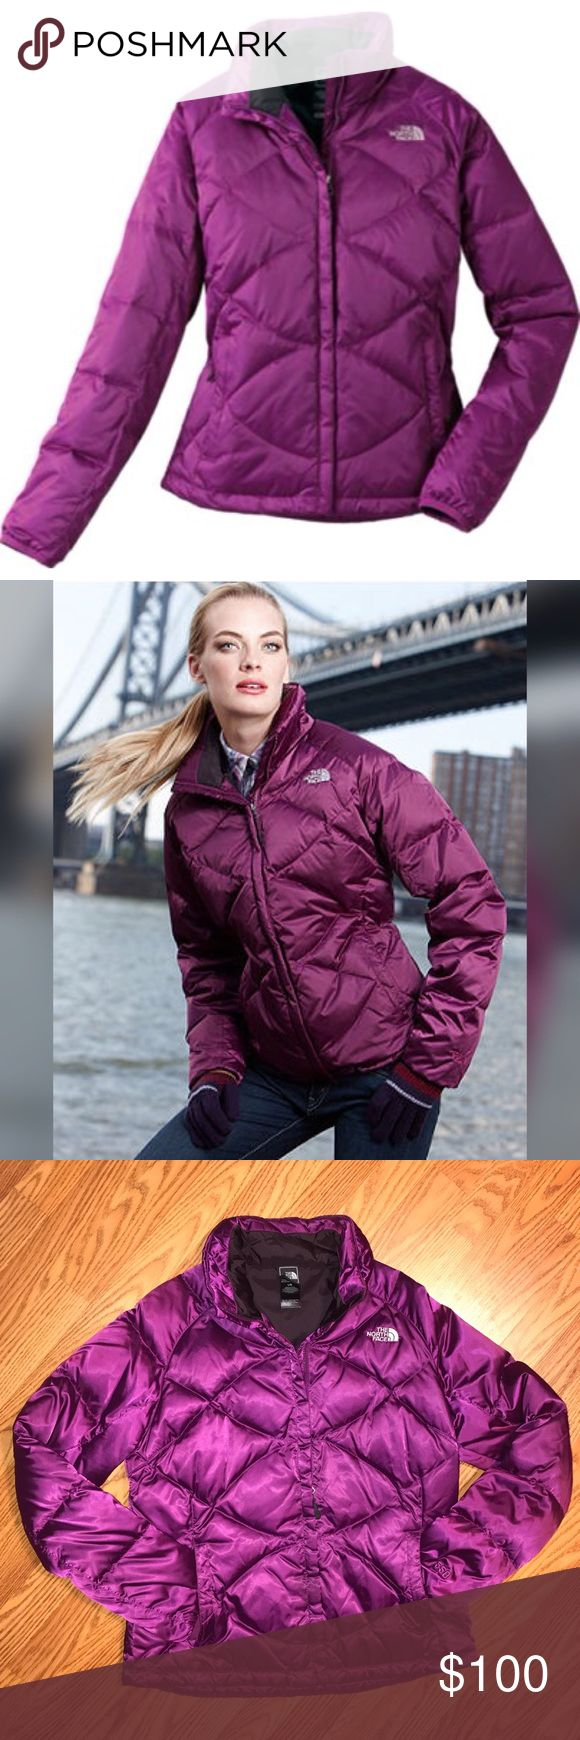 The North Face Women's Aconcagua Goose Down Jacket Slimming crisscross stitching gives this warm, comfortable jacket an updated look. Satin nylon shell with a durable water-repellent finish resists moisture. 550-fill-power goose down. Two hand pockets. Hem cinch cord. Imported. * Slimming crisscross stitching * Smooth, satin nylon shell * Durable water-repellent finish * 550-fill-power goose-down insulation The North Face Jackets & Coats Puffers